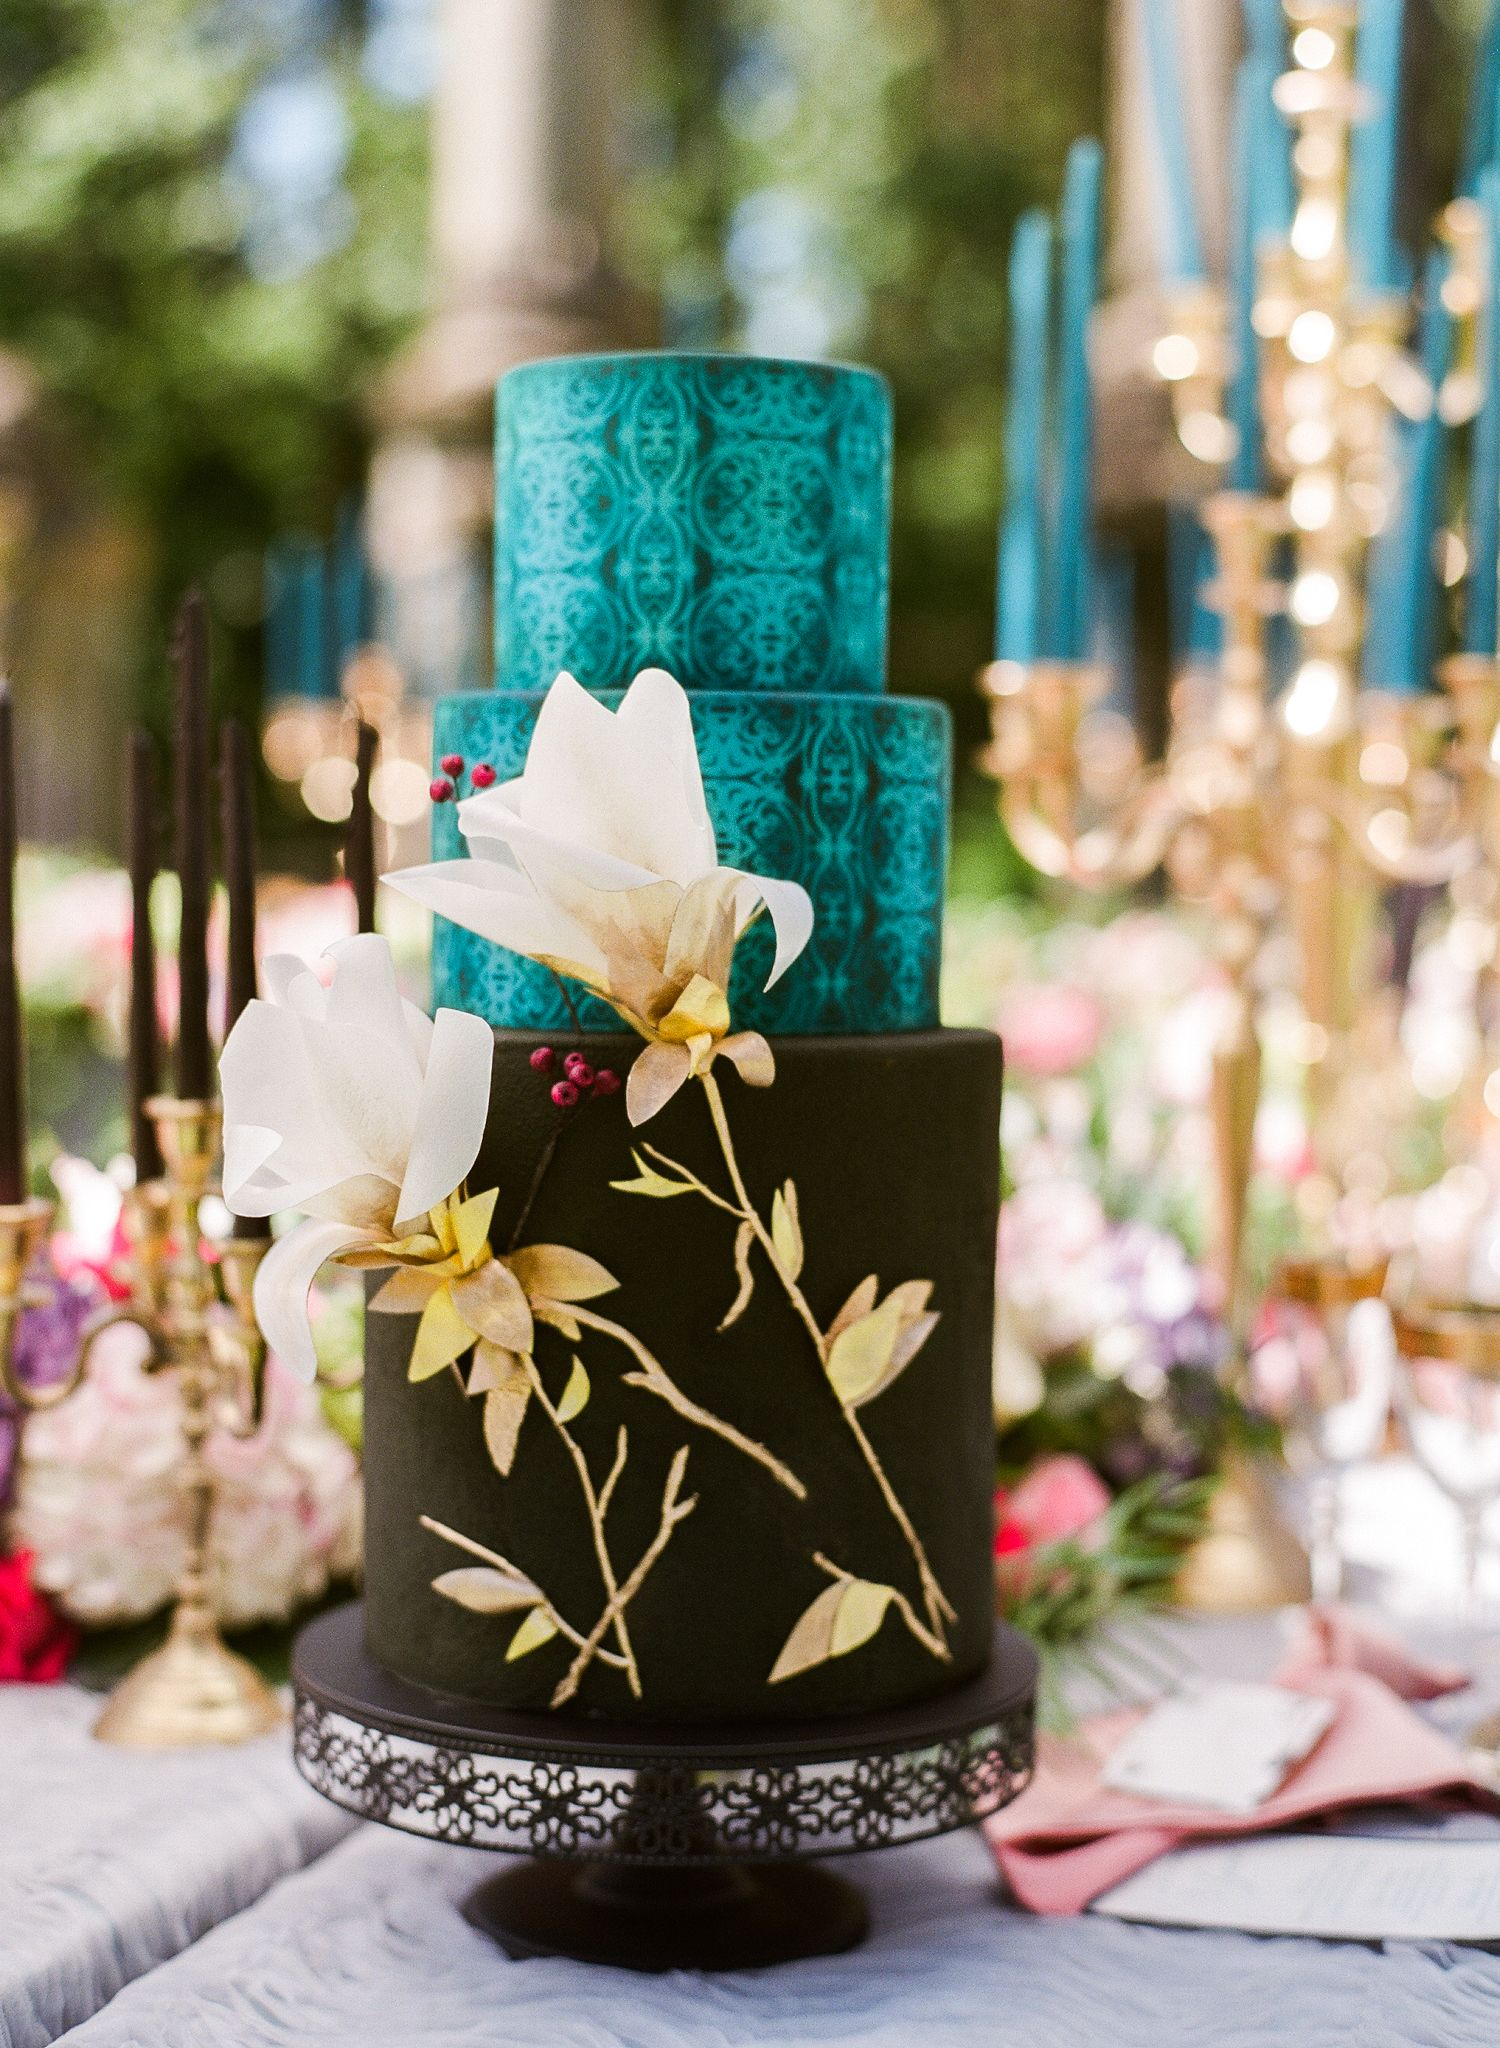 Blue and black wedding decor  The Perfect Blueprint for an Ethereal New Orleans Wedding  Lancing